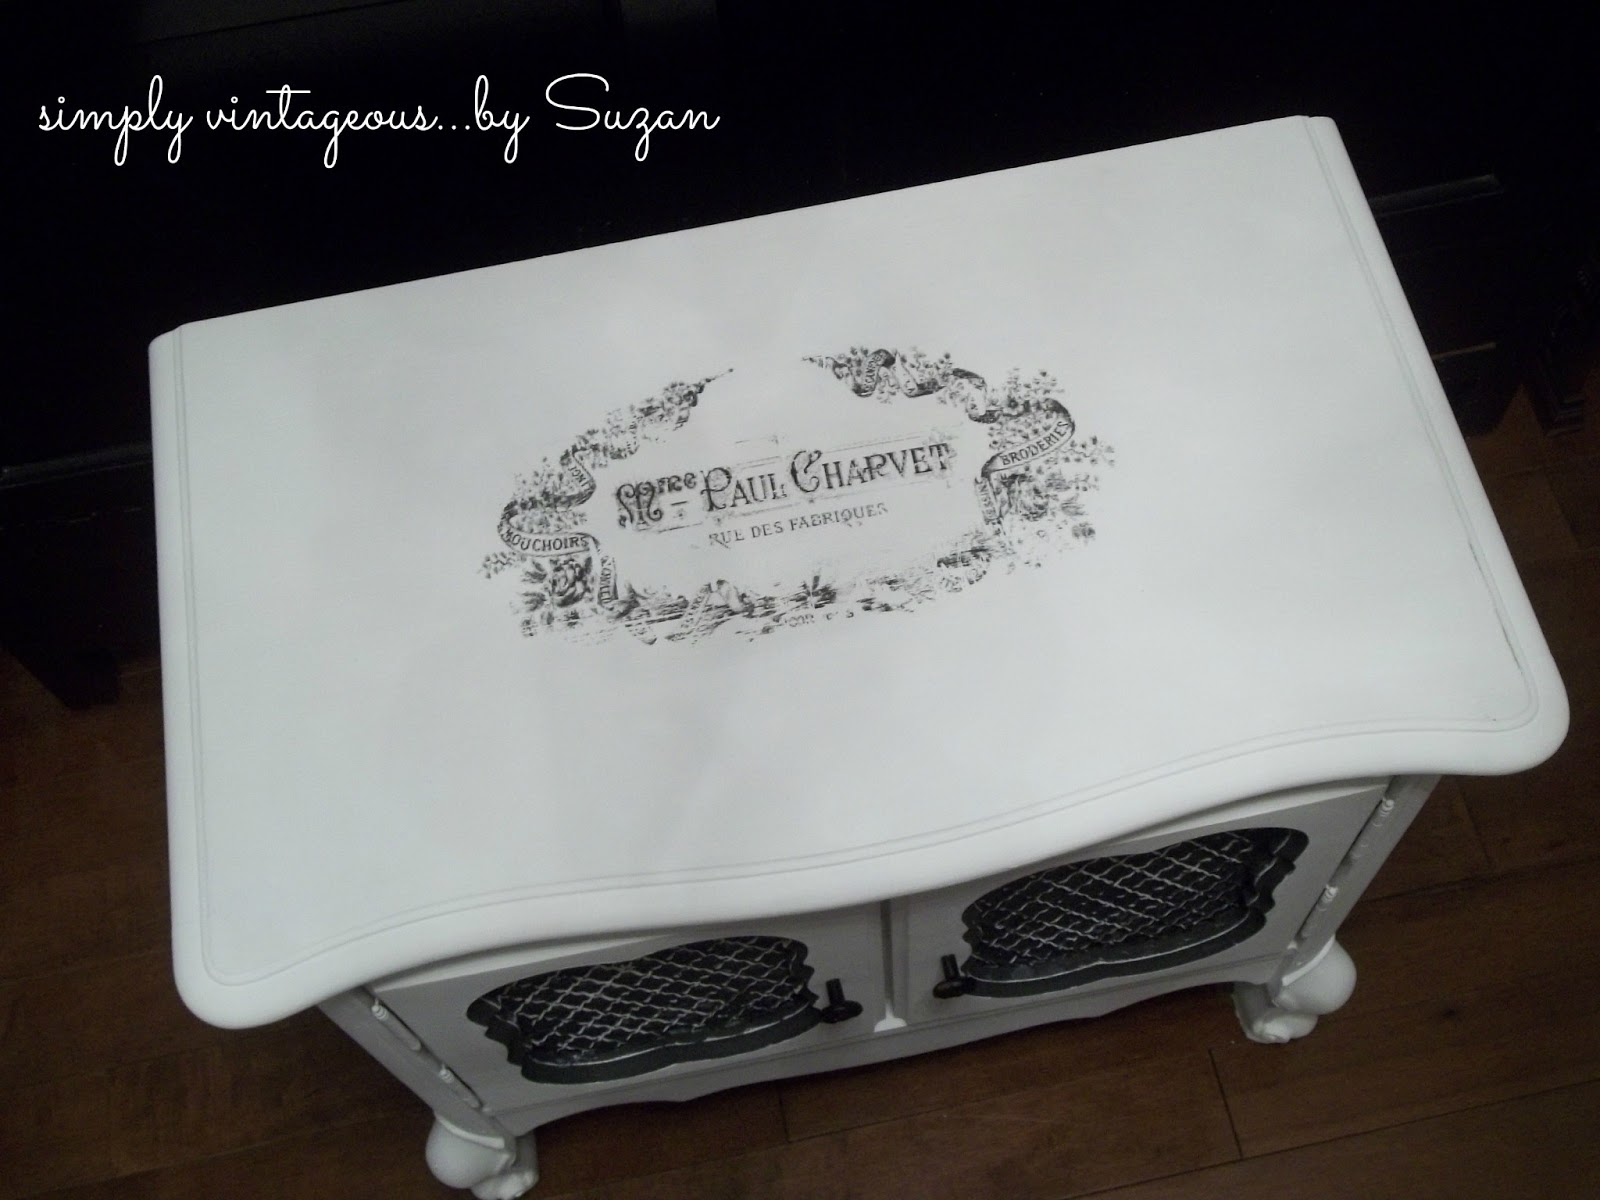 simply vintageous...by Suzan: Here's the story............